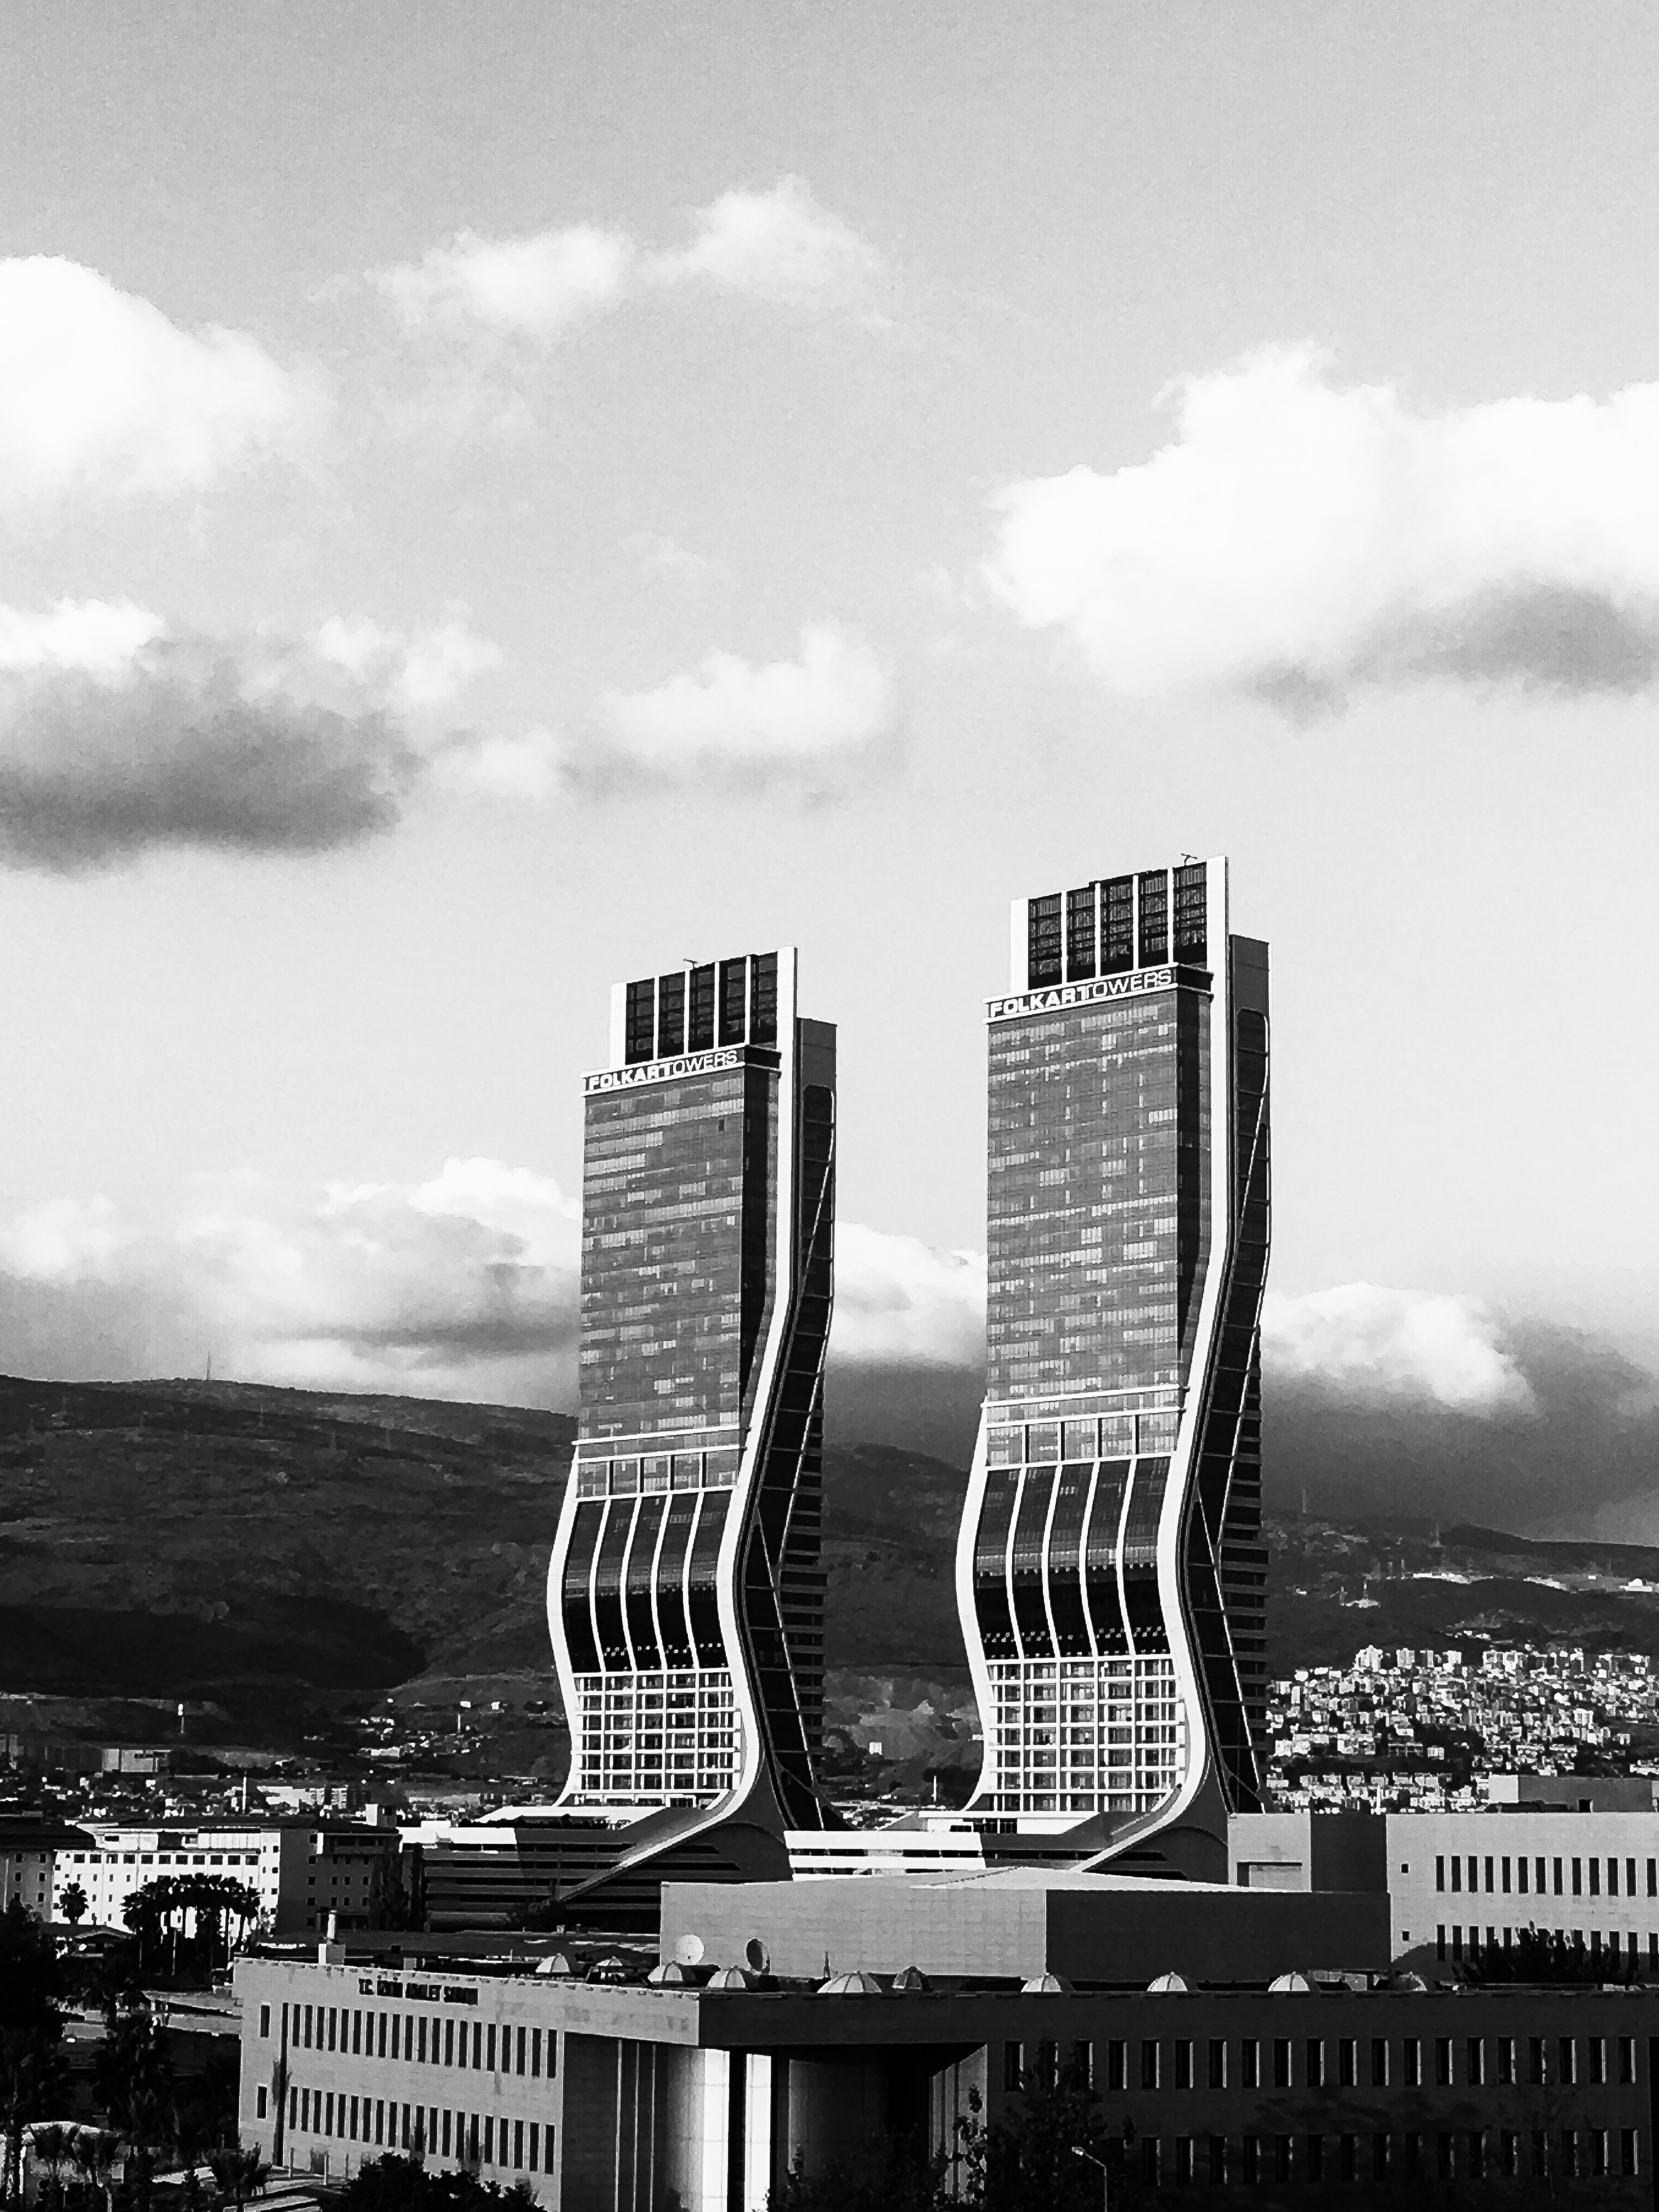 Greyscale Photography of Two High Rise Buildings, Architecture, Outdoors, Travel, Tower, HQ Photo